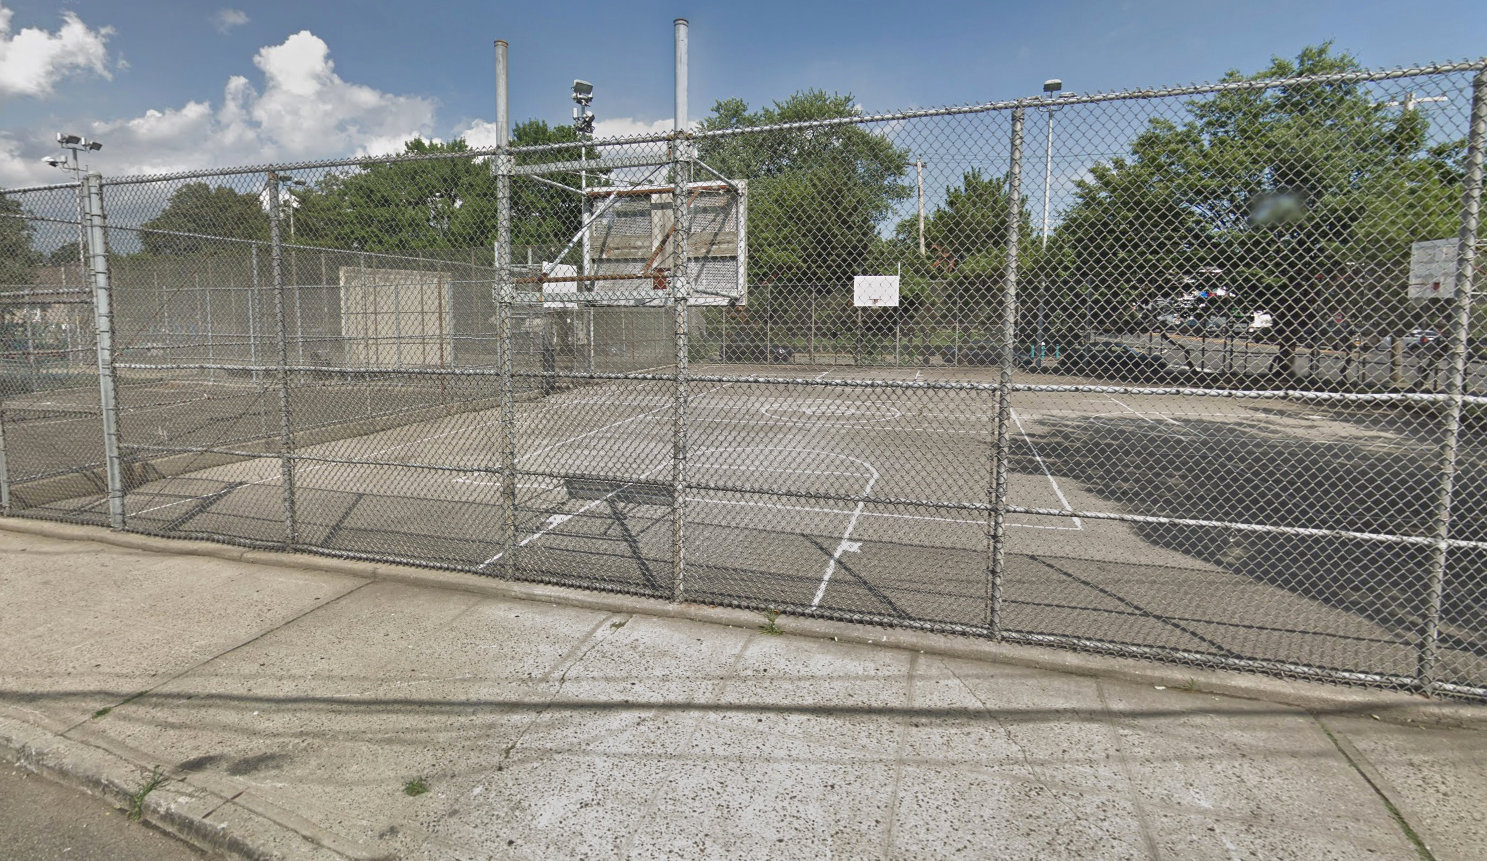 Hendrickson Avenue Park lies on Hempstead Turnpike and provides a modest home for local kids playing basketball.